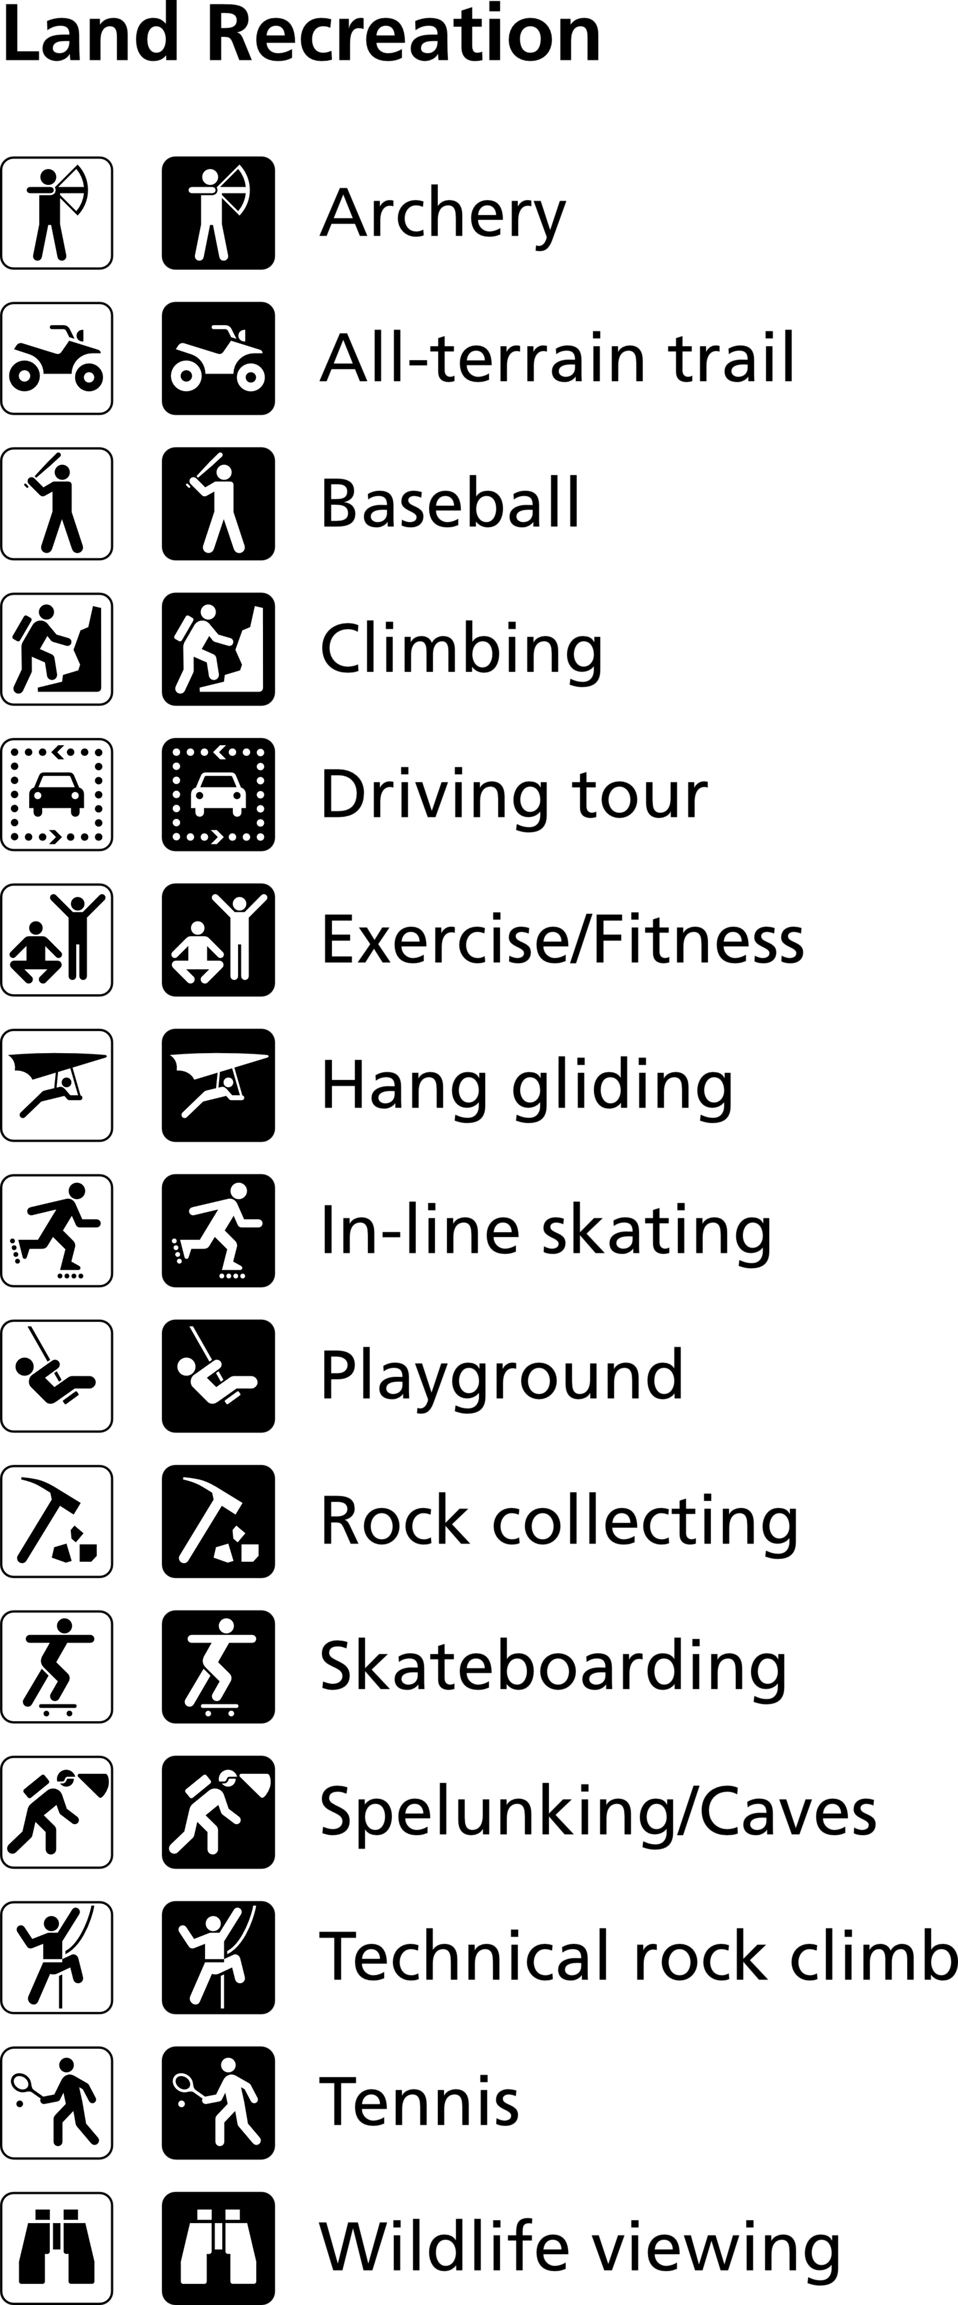 Land recreation symbols